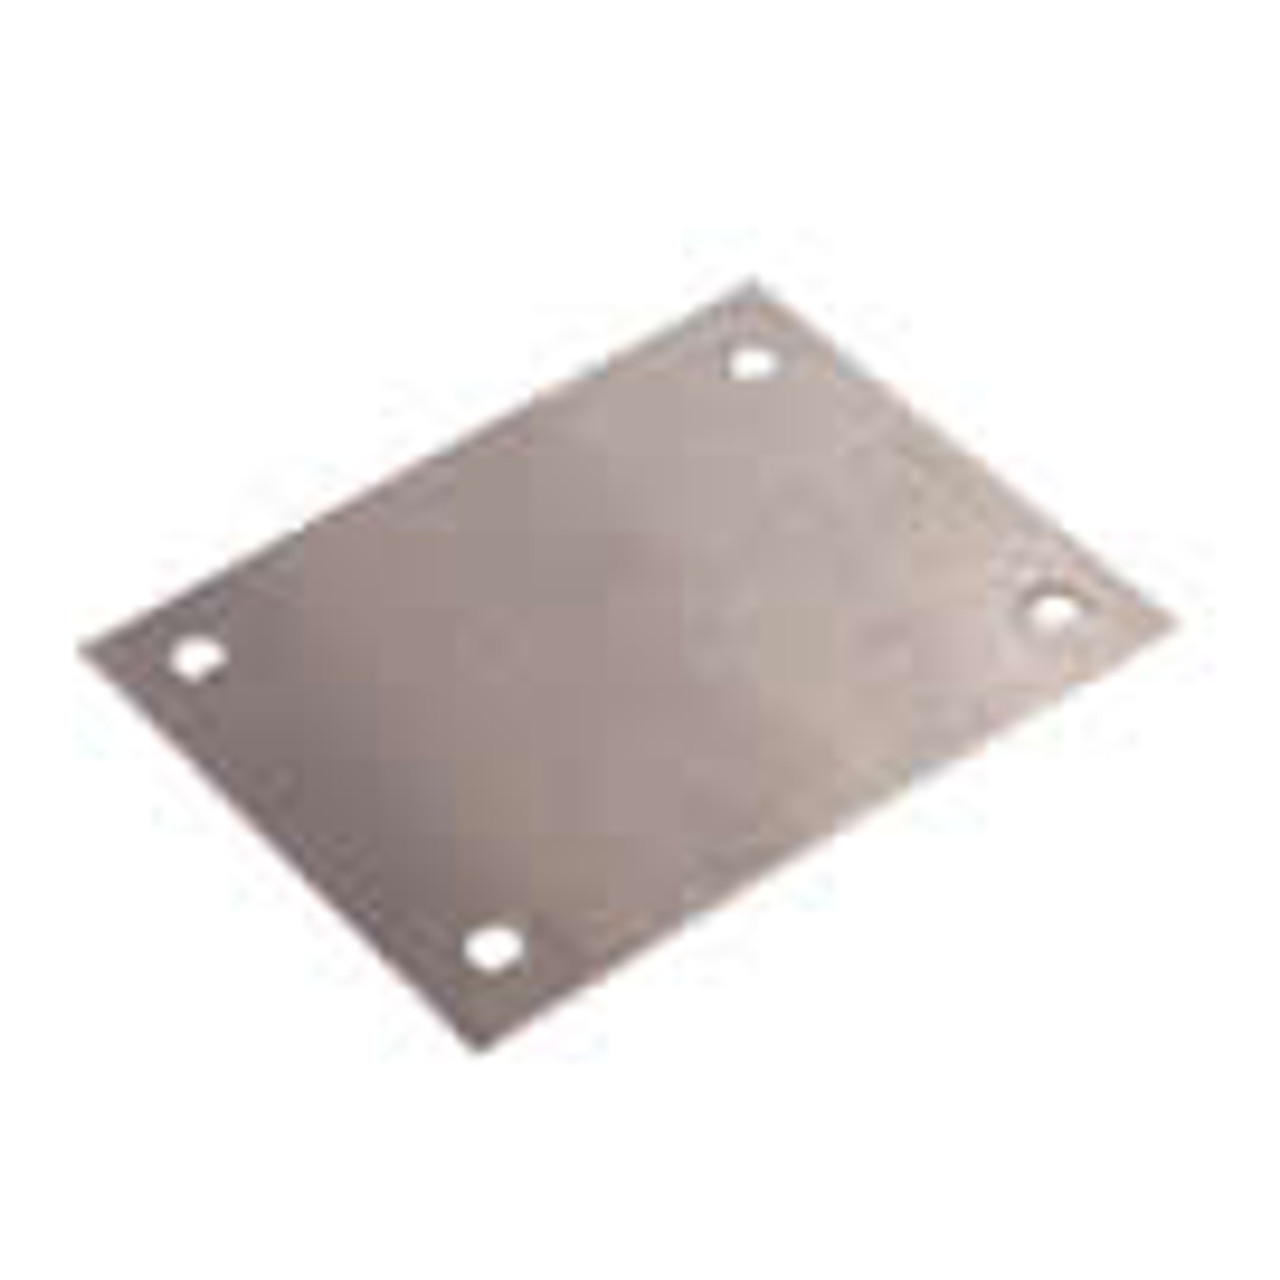 Cover Plate (CP-1)